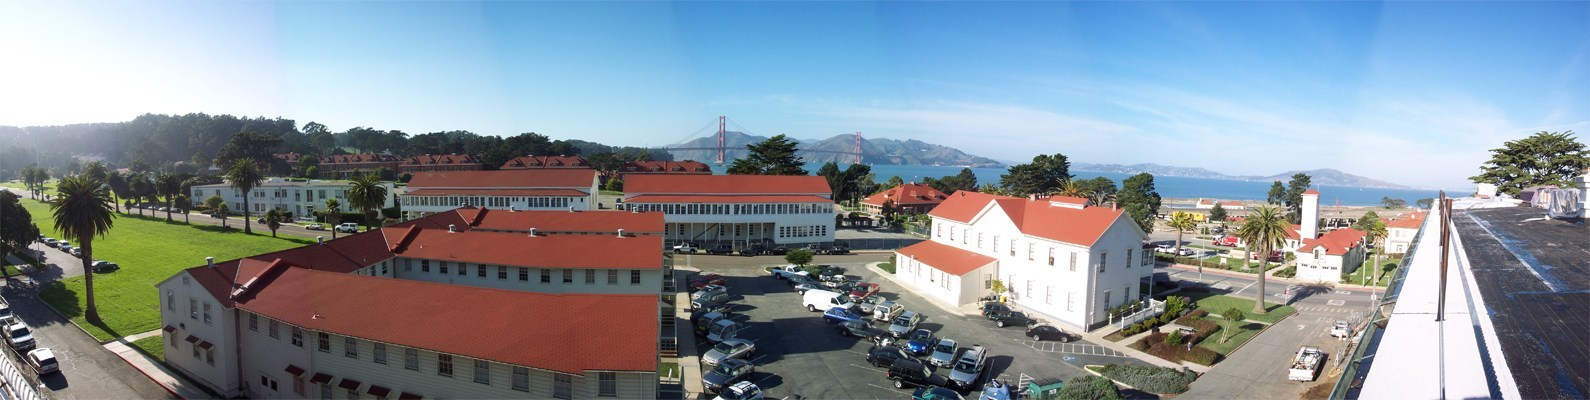 view from The Bay School